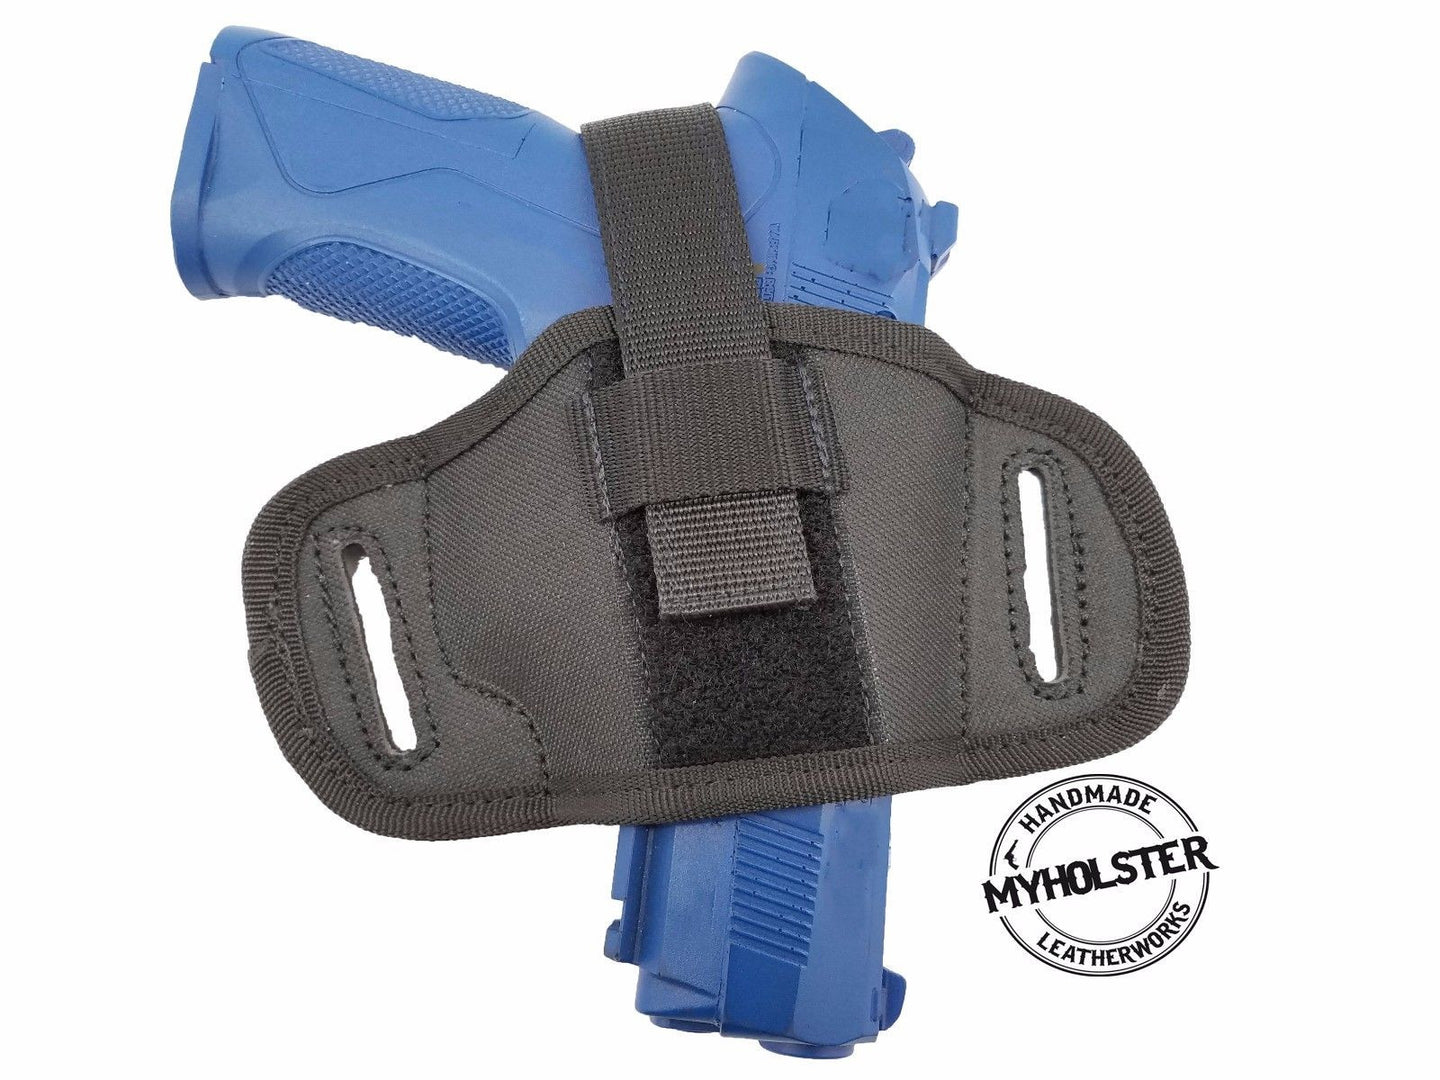 Semi-molded Thumb Break Pancake Belt Holster for Caracal-C